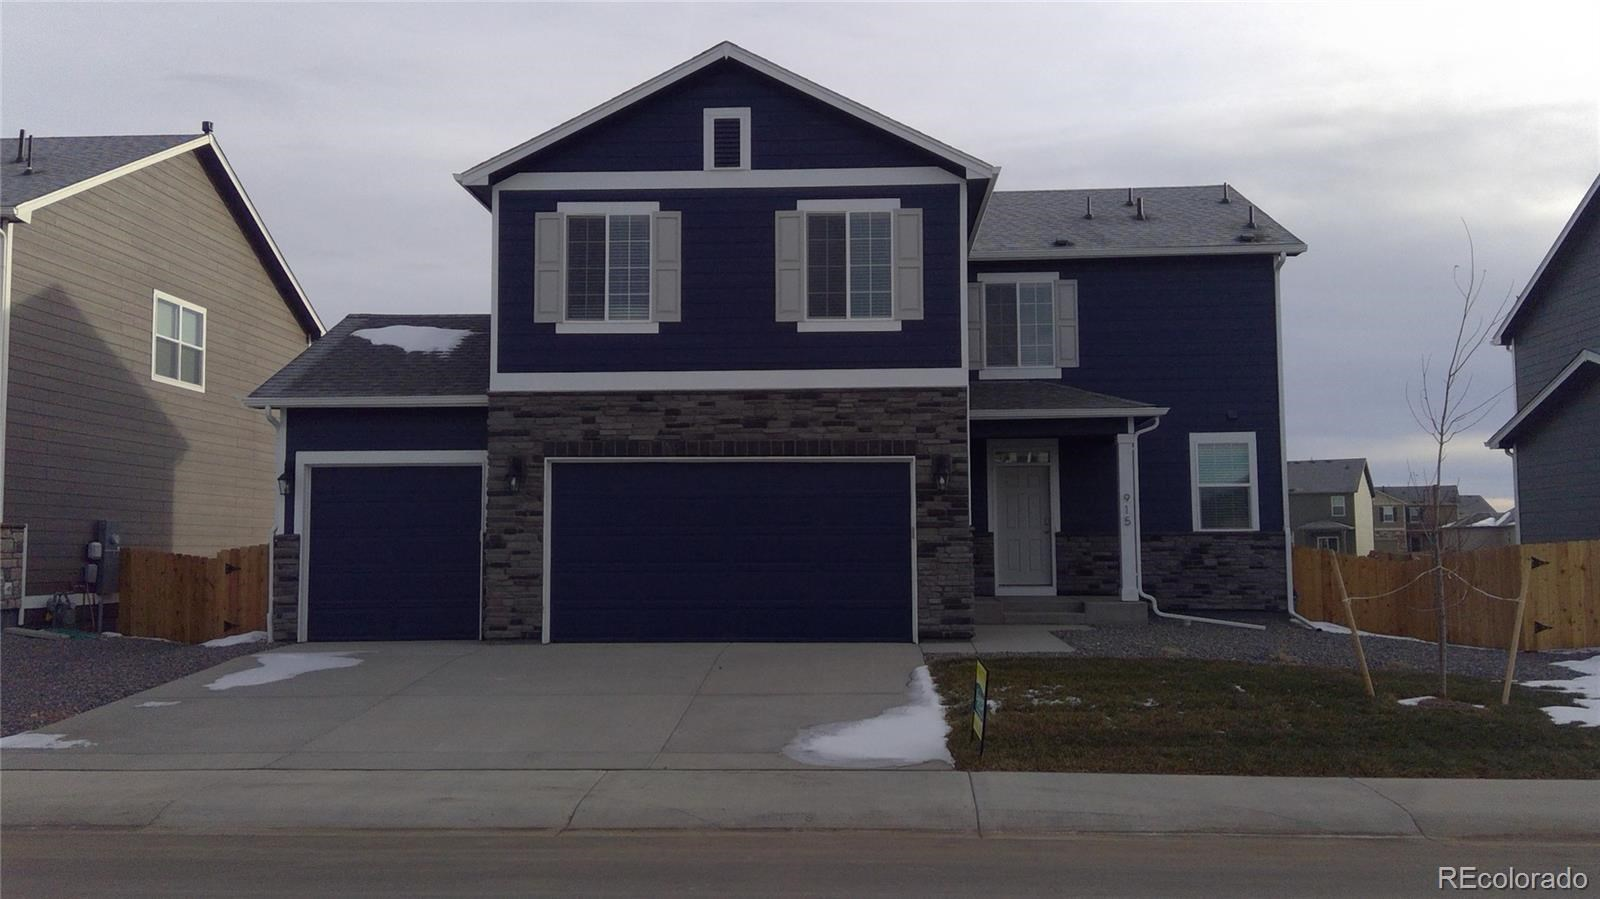 MLS# 4867430 - 1 - 915 Camberly Drive, Windsor, CO 80550